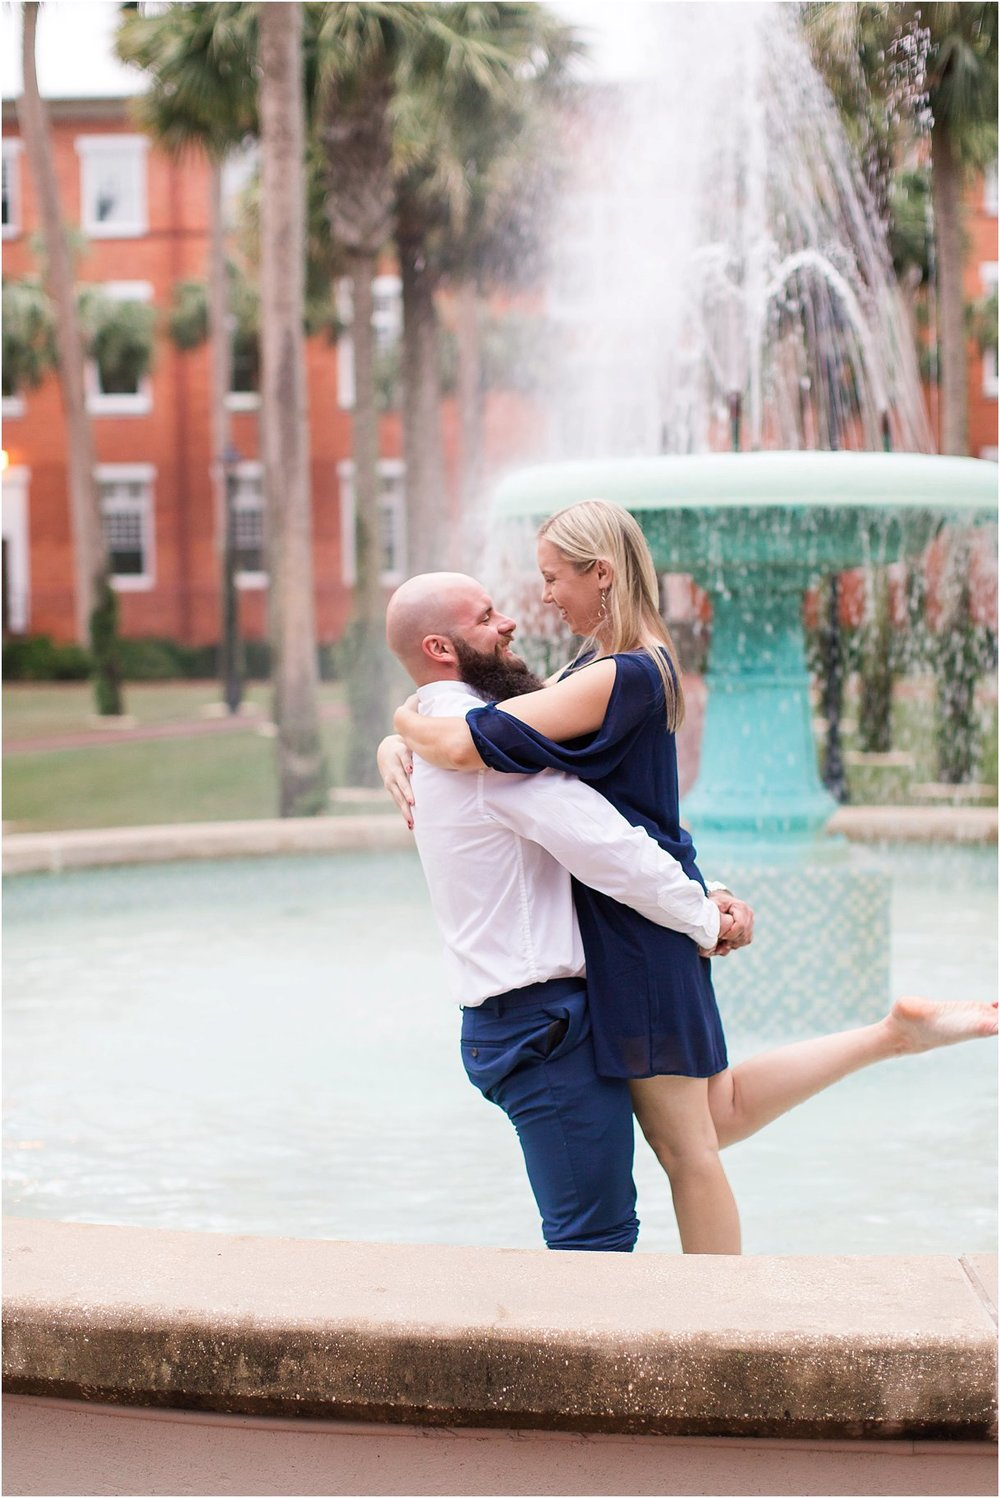 Stetson Florida Engagement Session Tampa St Augustine DeLand1.jpg